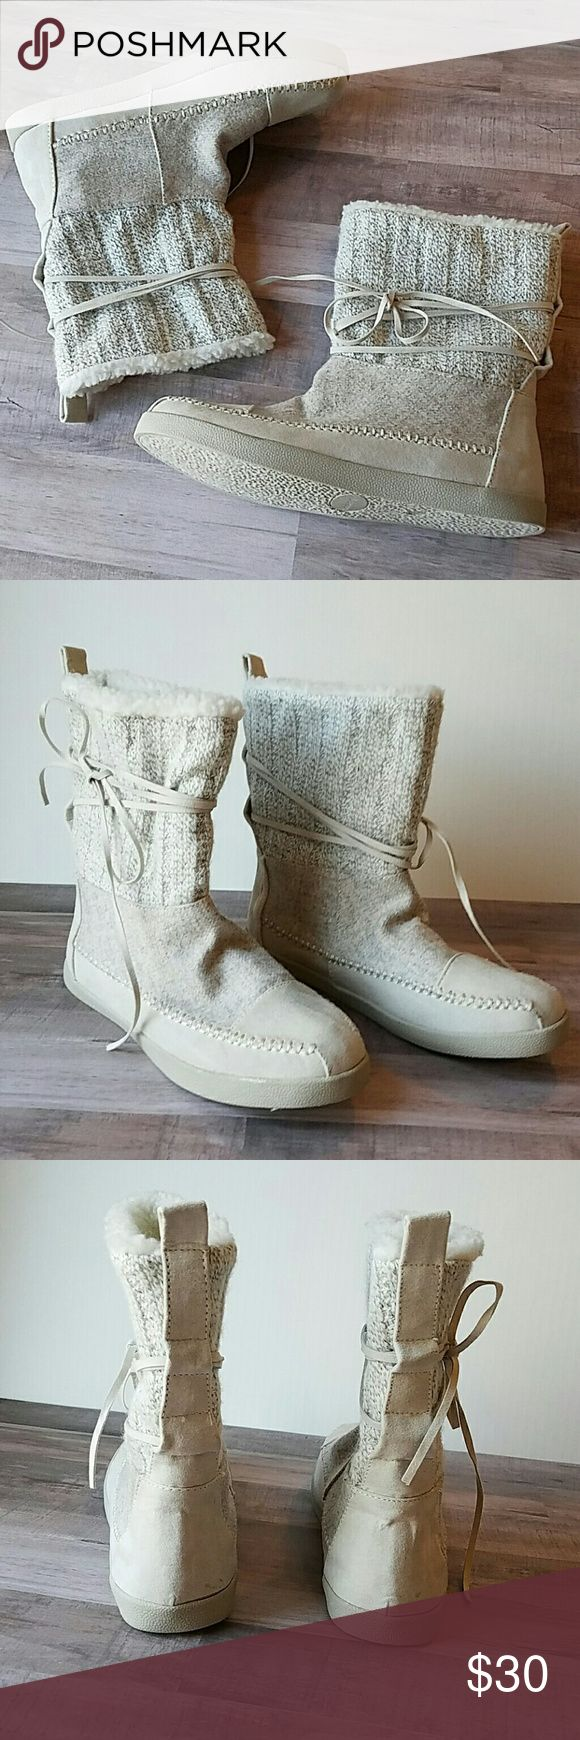 New Madden Girl white knit mukluk boots sz 6 Madden Girl white knit boots. Brand new without box.  - white/tannish winter boots - ties around ankle - knit top - white fleece lining - size 6 women's  I love offers! Please feel free to negotiate price through the offer button. Madden Girl Shoes Lace Up Boots